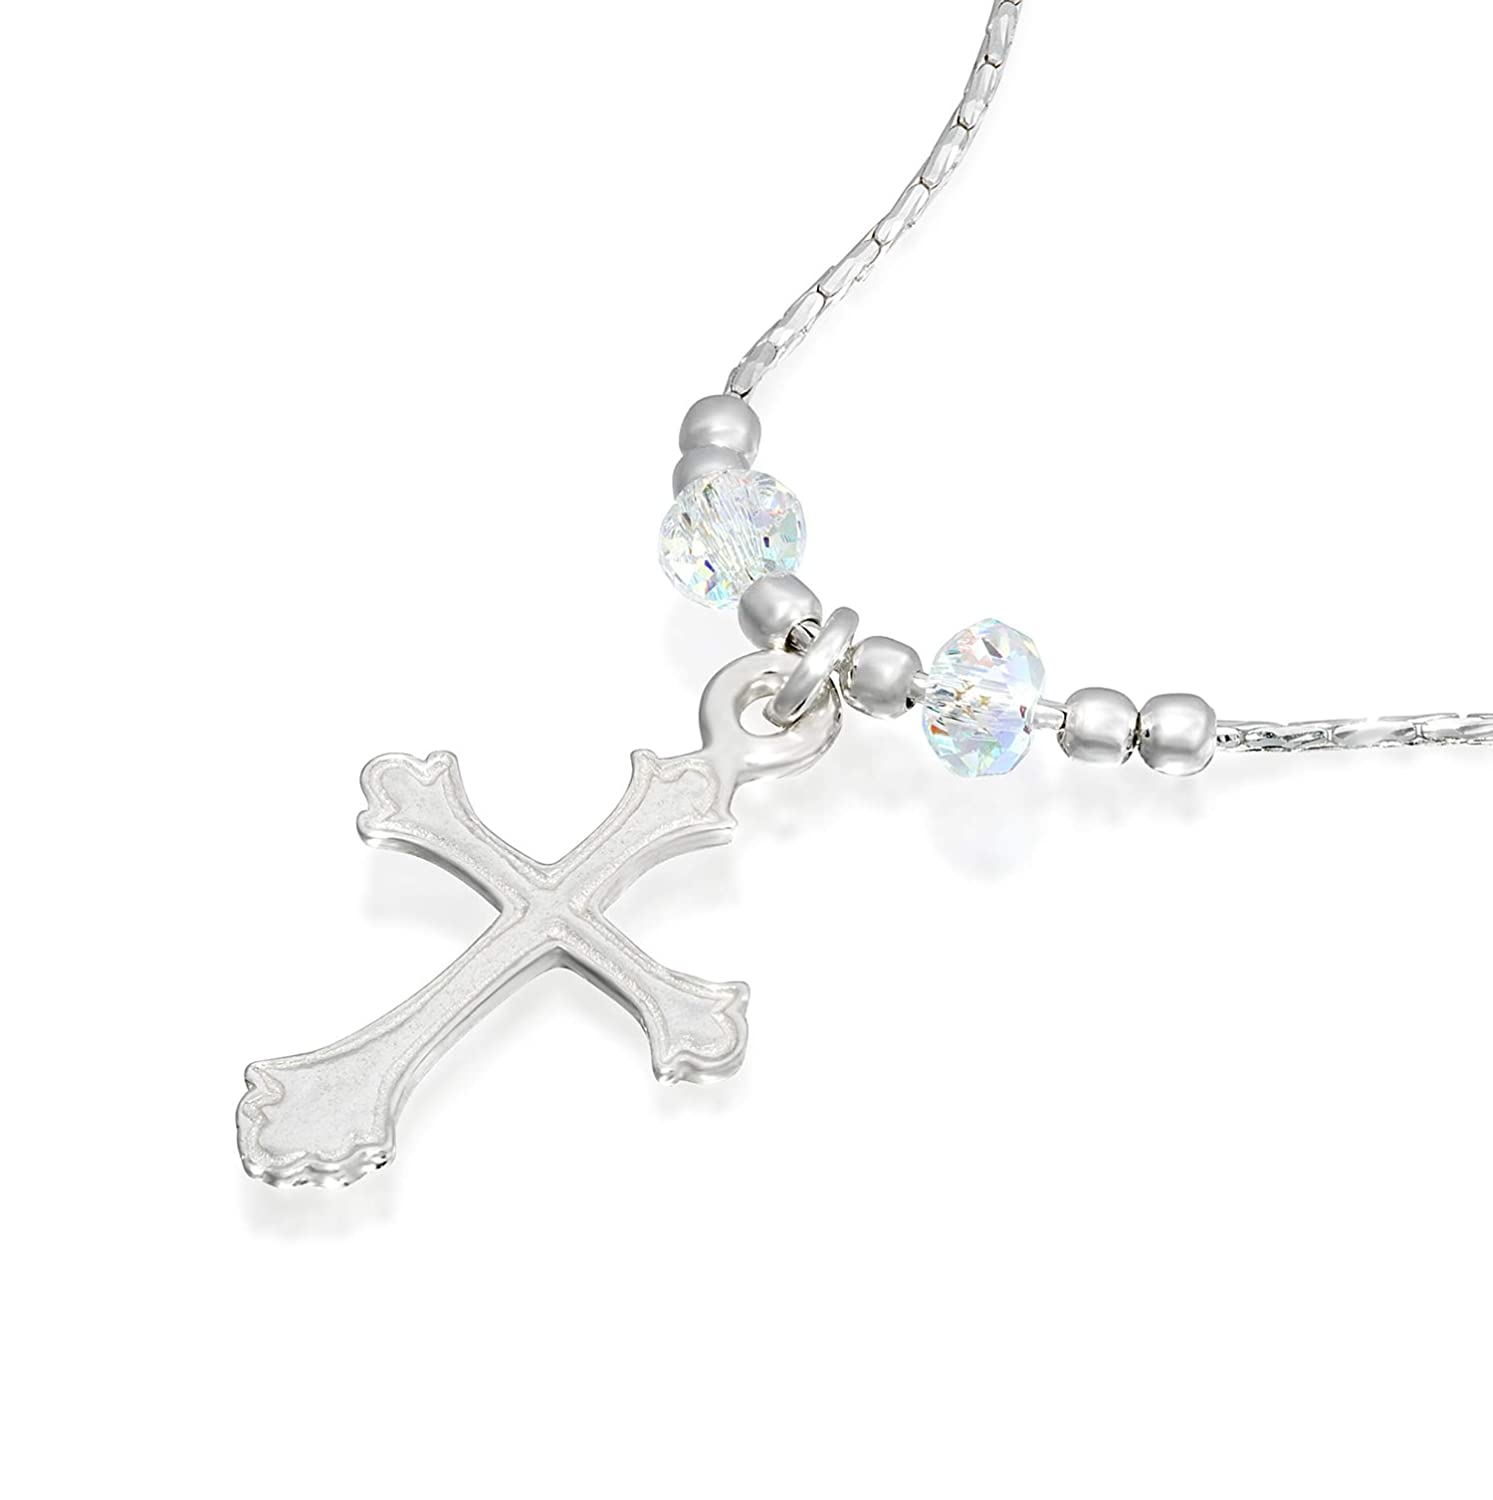 260e4cd0b1061 Stera Jewelry Silver Necklace Choice of Cross Pendants Made with Swarovski  Crystals, 16 + 4 inches